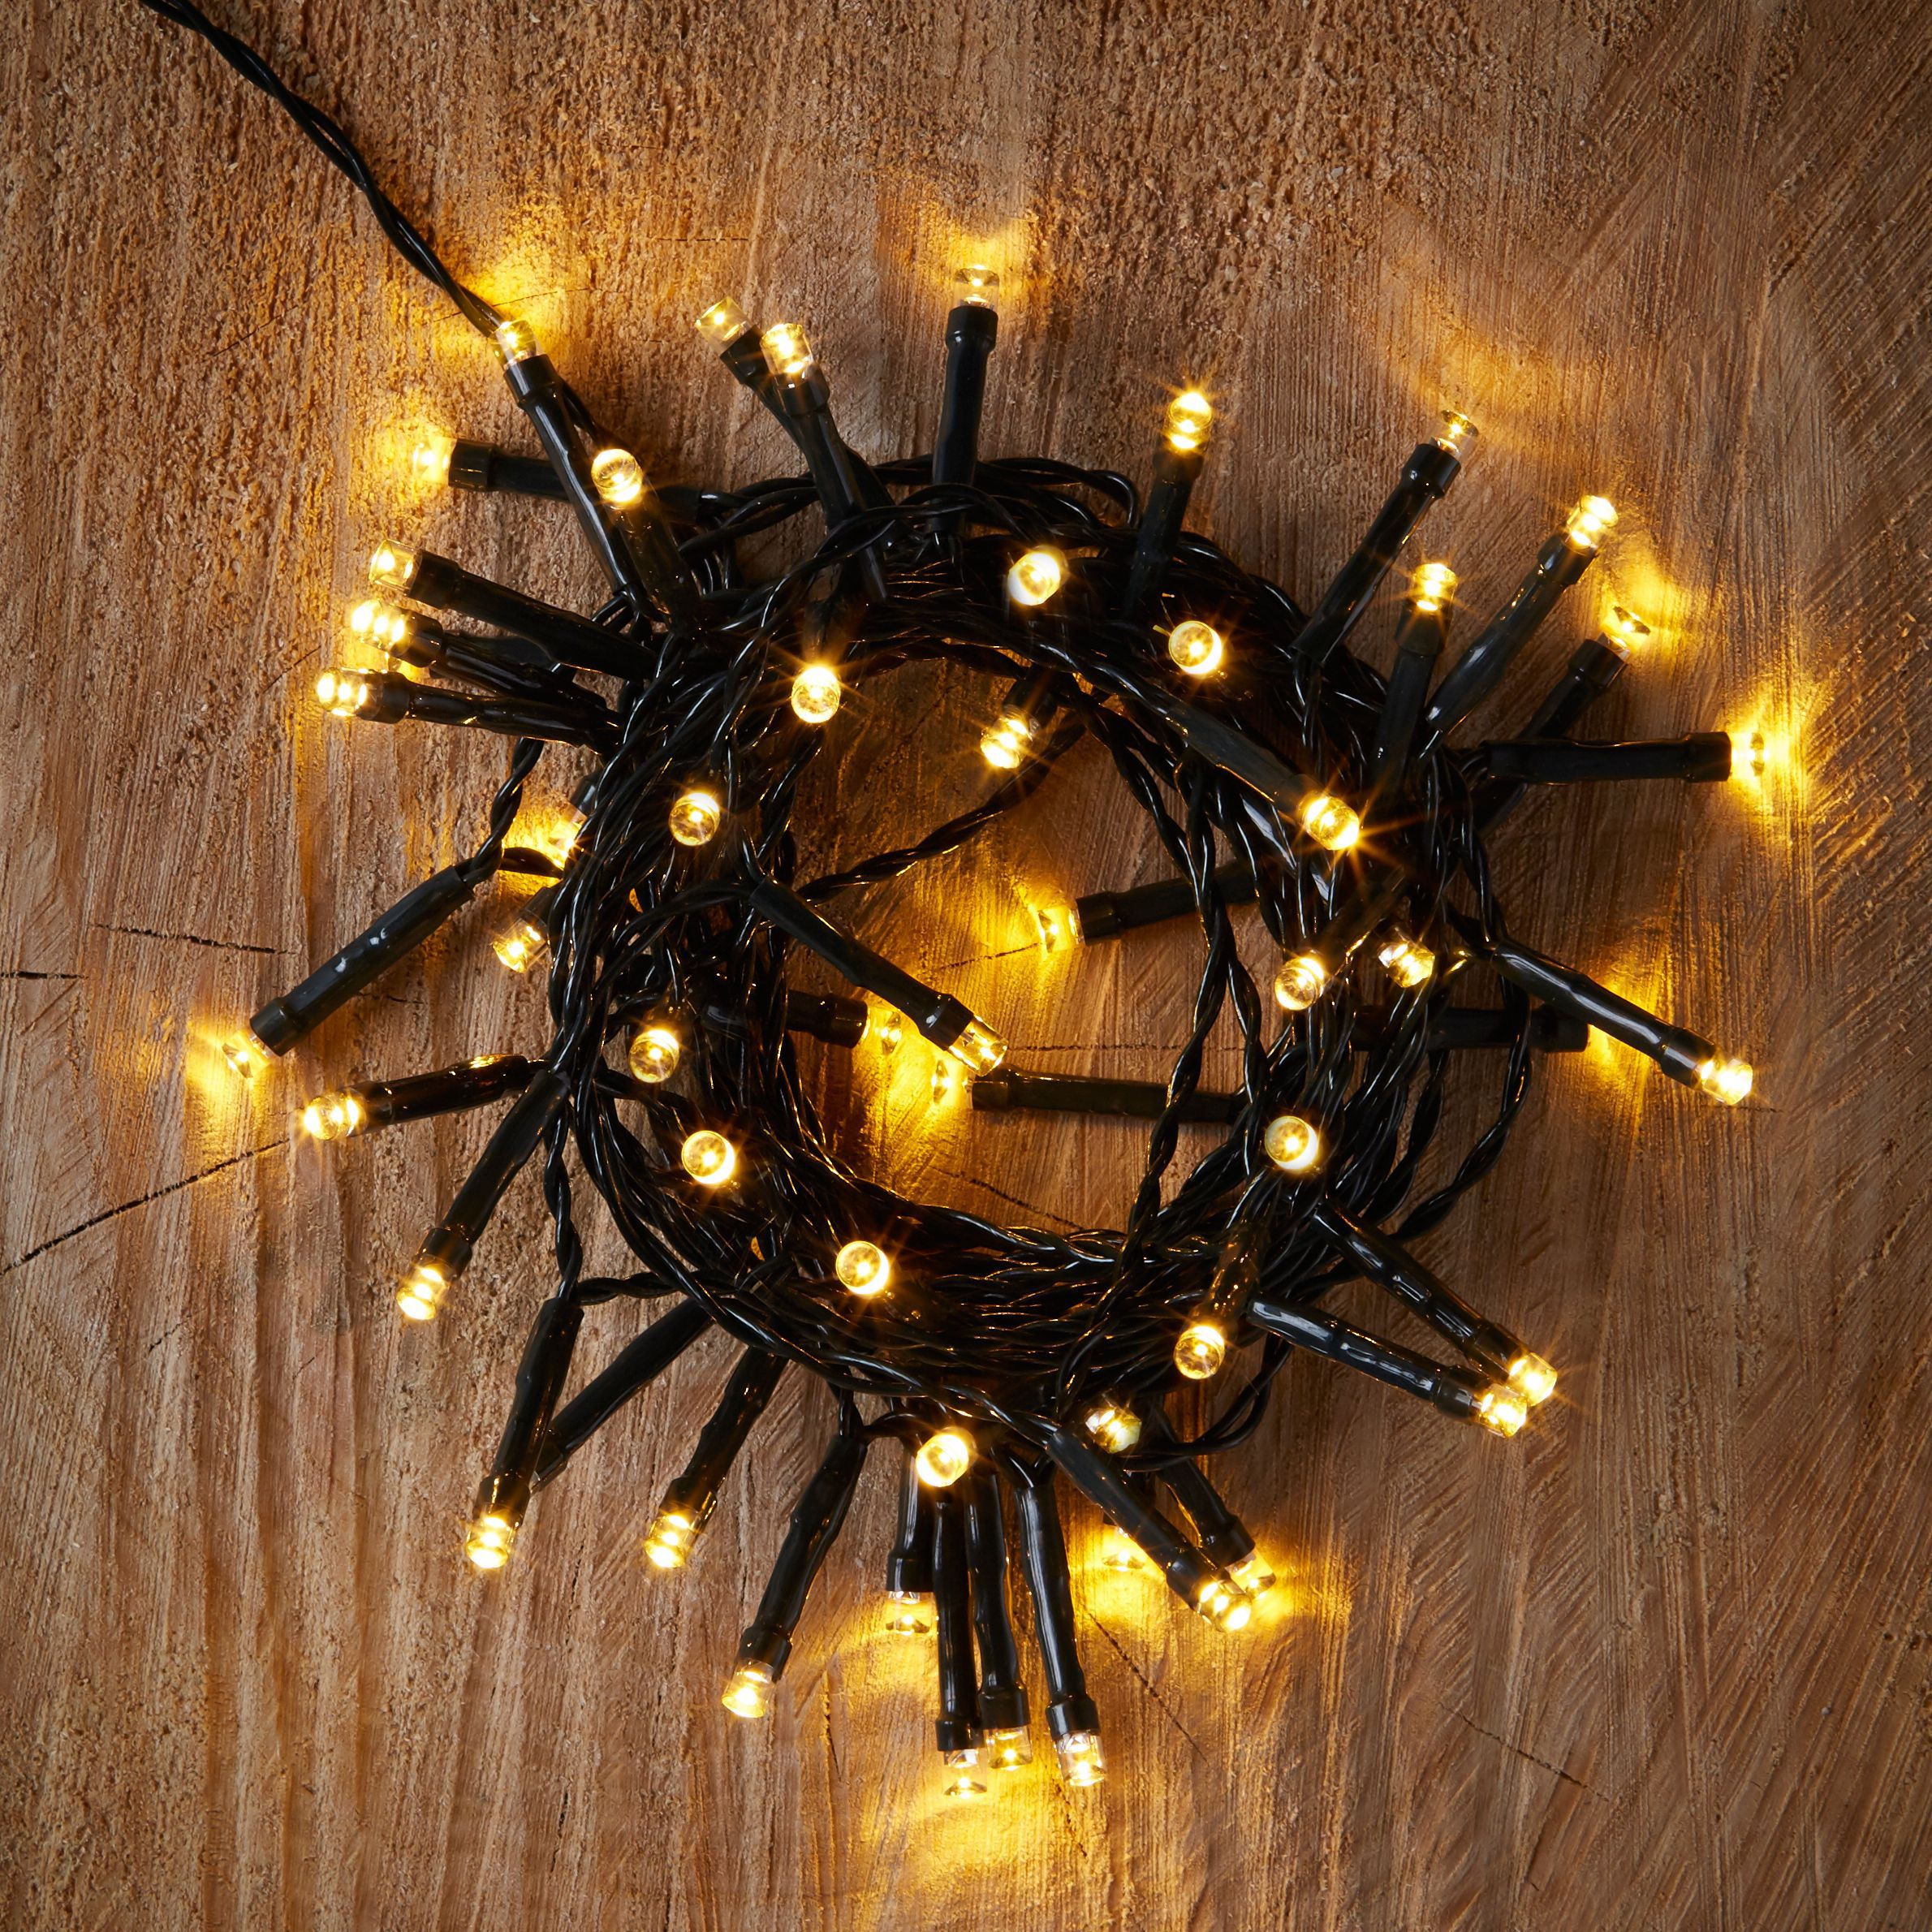 Led String Lights Diy : Battery Operated 50 Warm White LED String Lights Departments DIY at B&Q